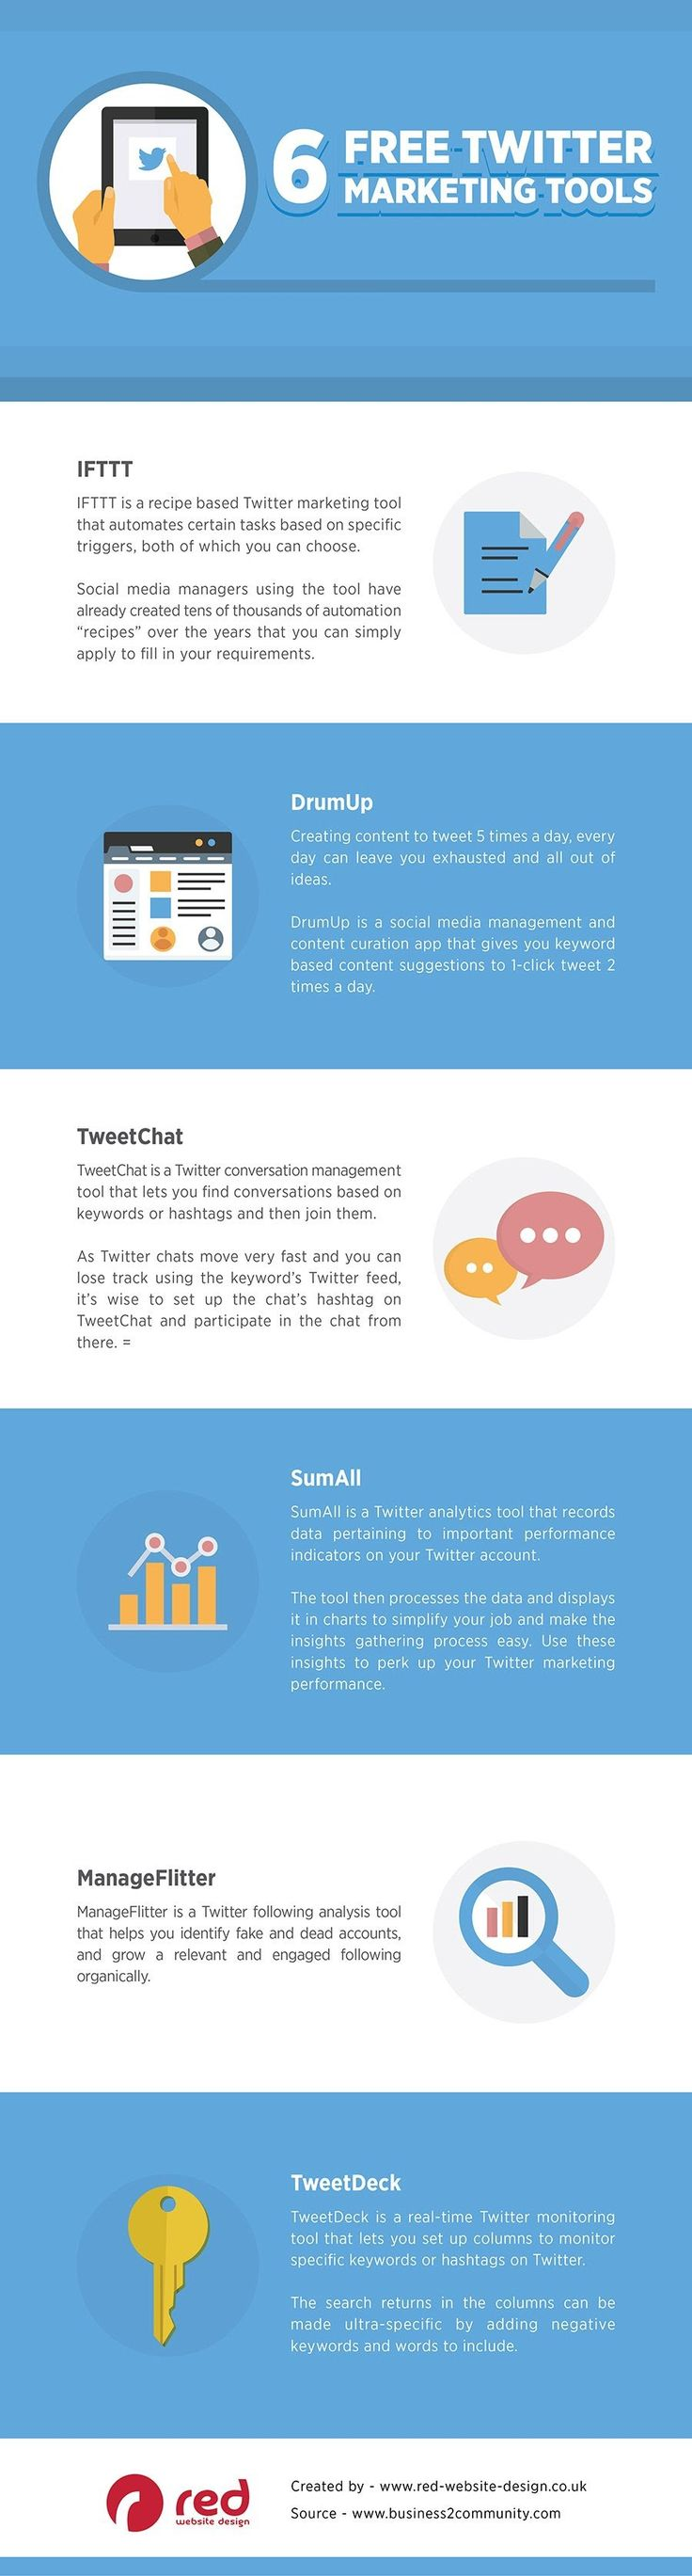 Useful Twitter marketing tools. #infographic